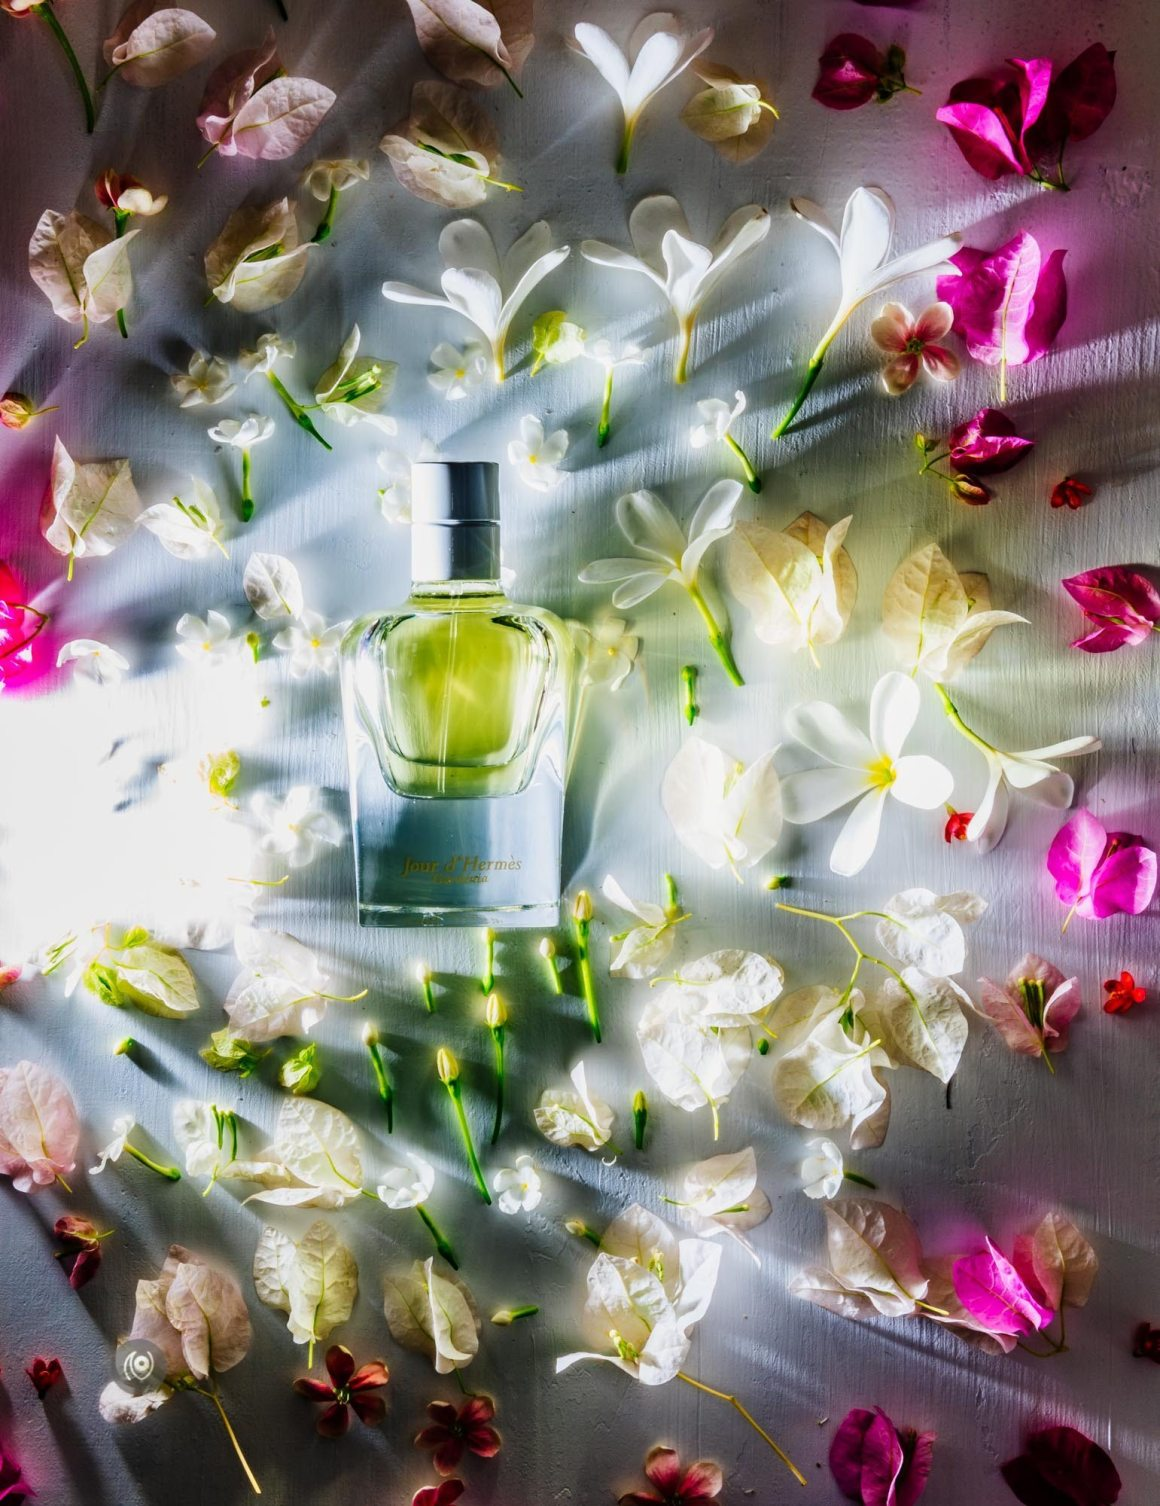 FragranceOfTheMonth-Naina.co-Jour-Hermes-Gardenia-EyesForLuxury-13